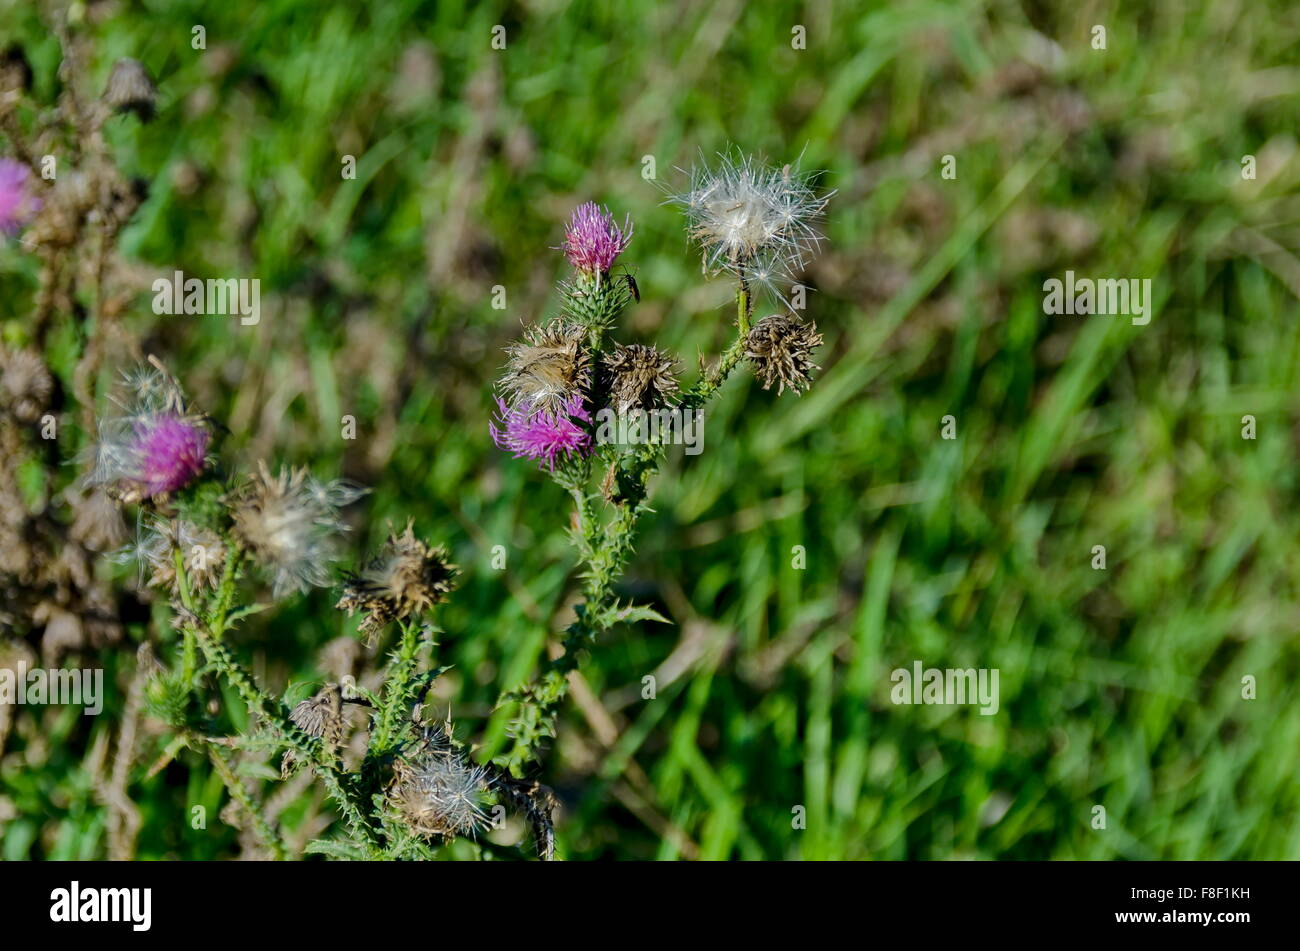 Thistle flowers, seed and insect in field - Stock Image